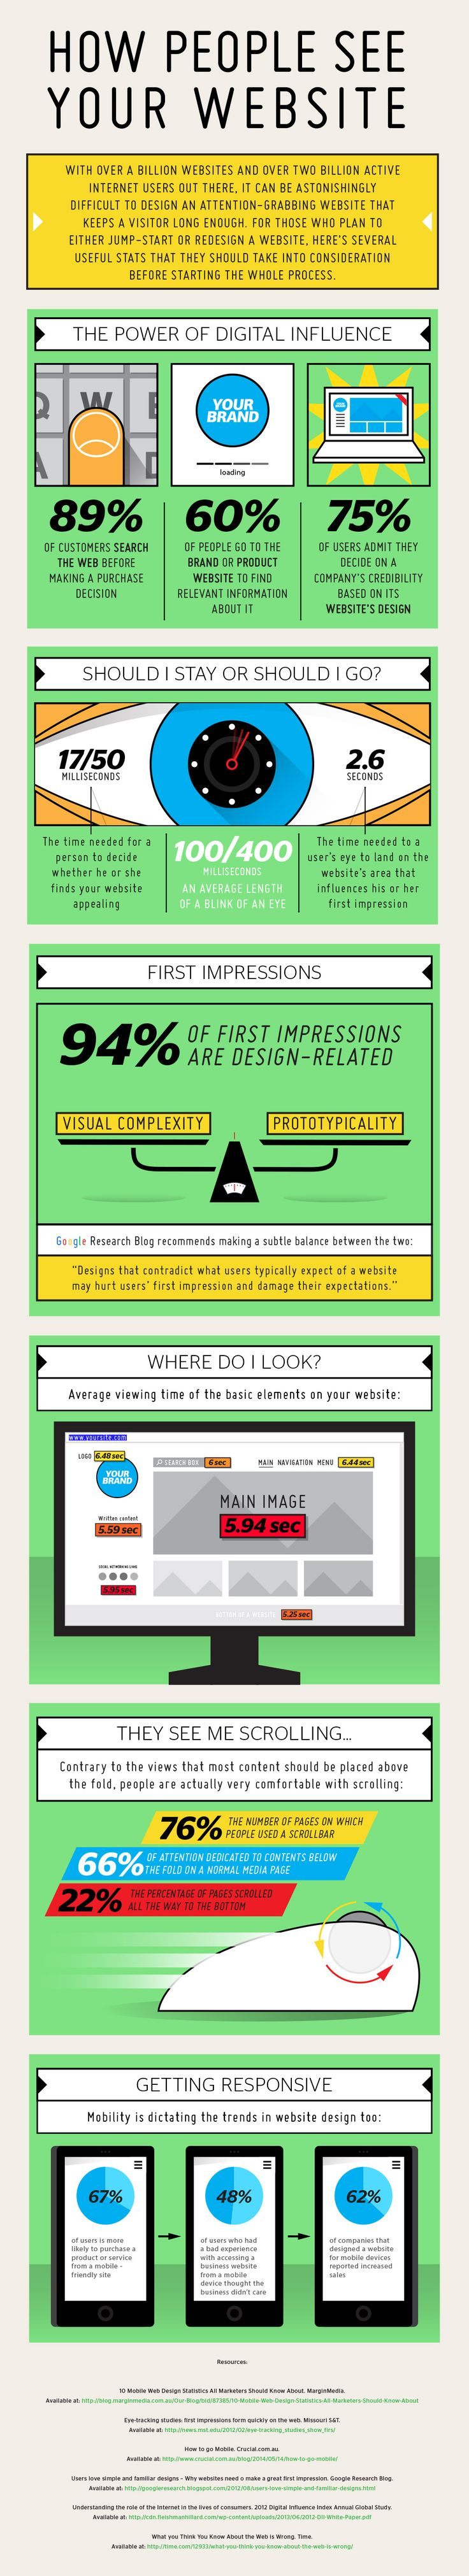 How People See Your Website - #Infographic #WebDesign #Web